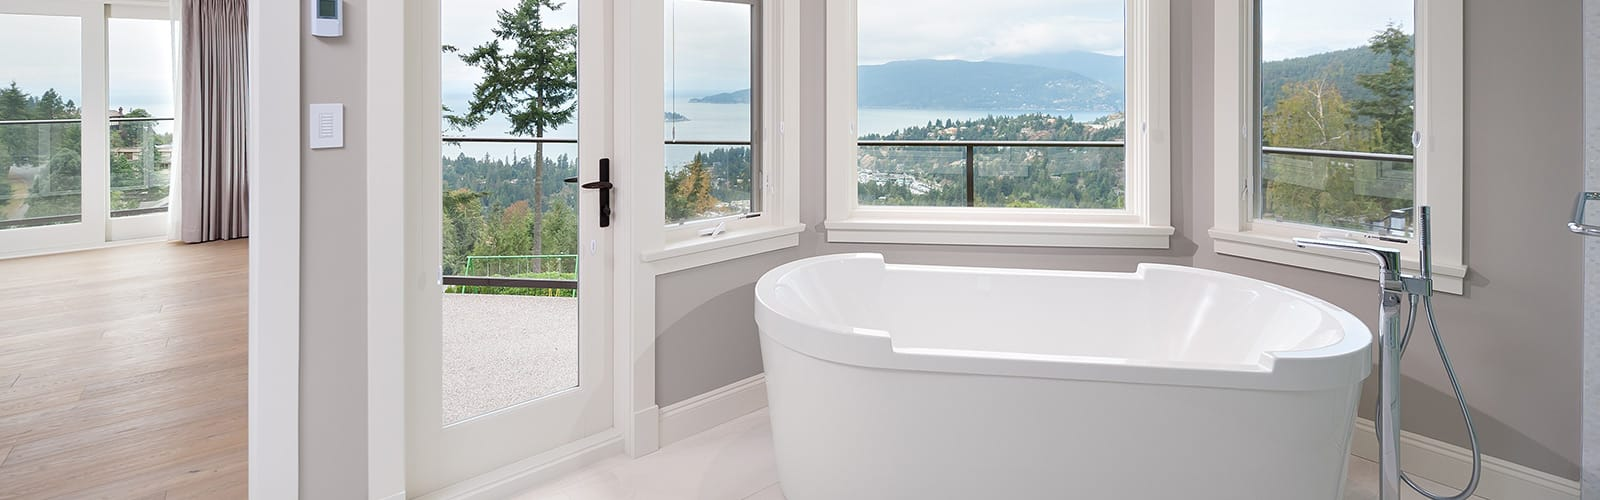 Luxury bathroom renovation in white - Shakespeare homes Renovations